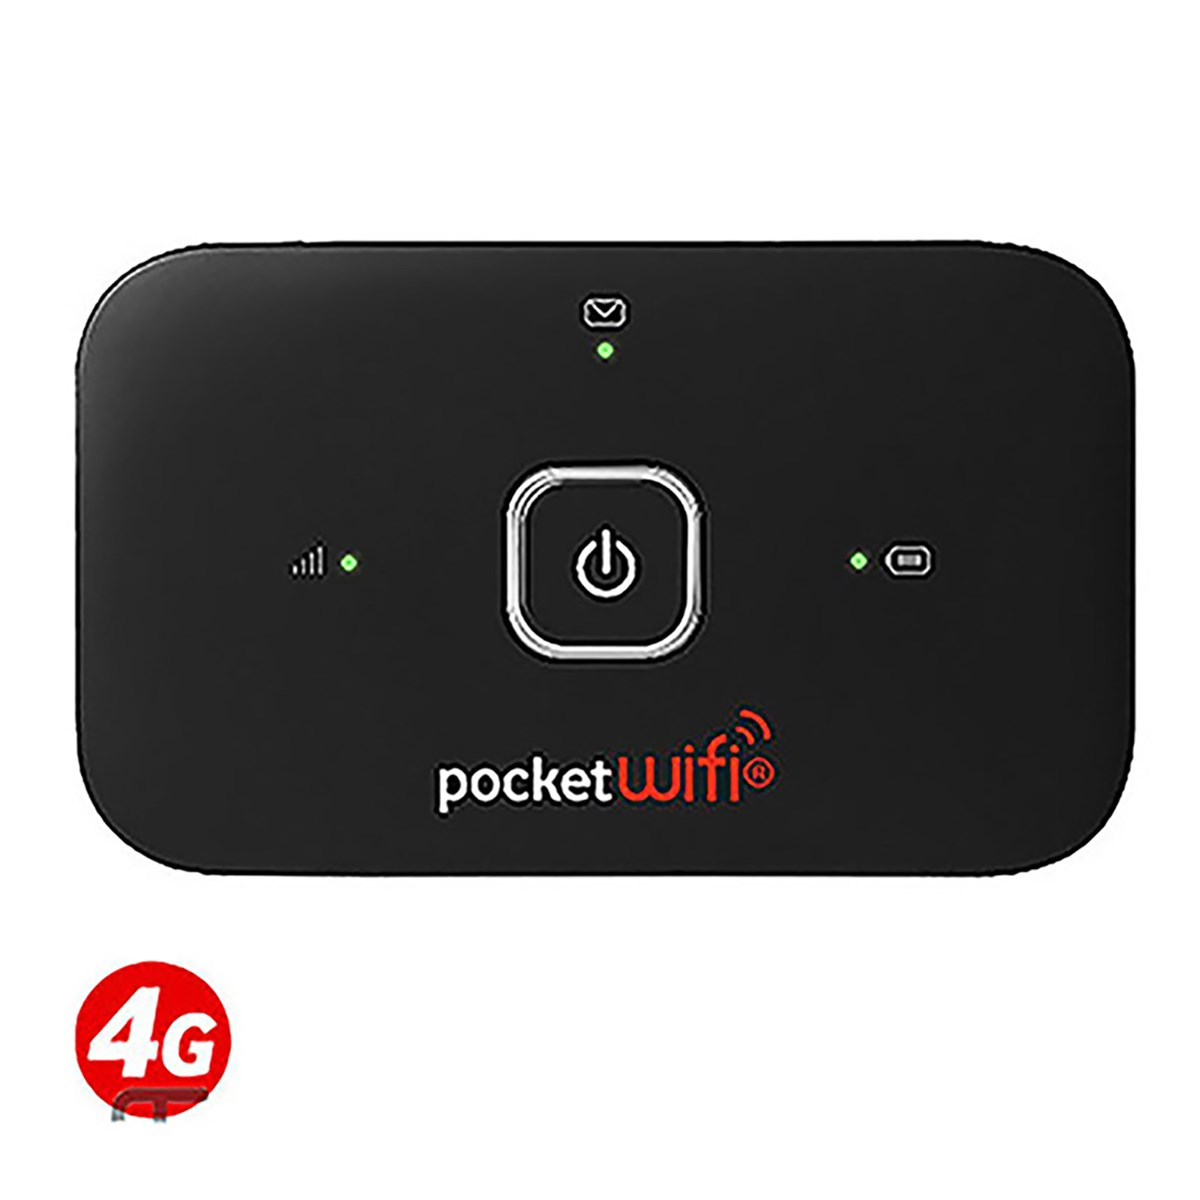 New Huawei R216h Unlocked 3G 4G Vodafone Mobile Pocket WiFi Router